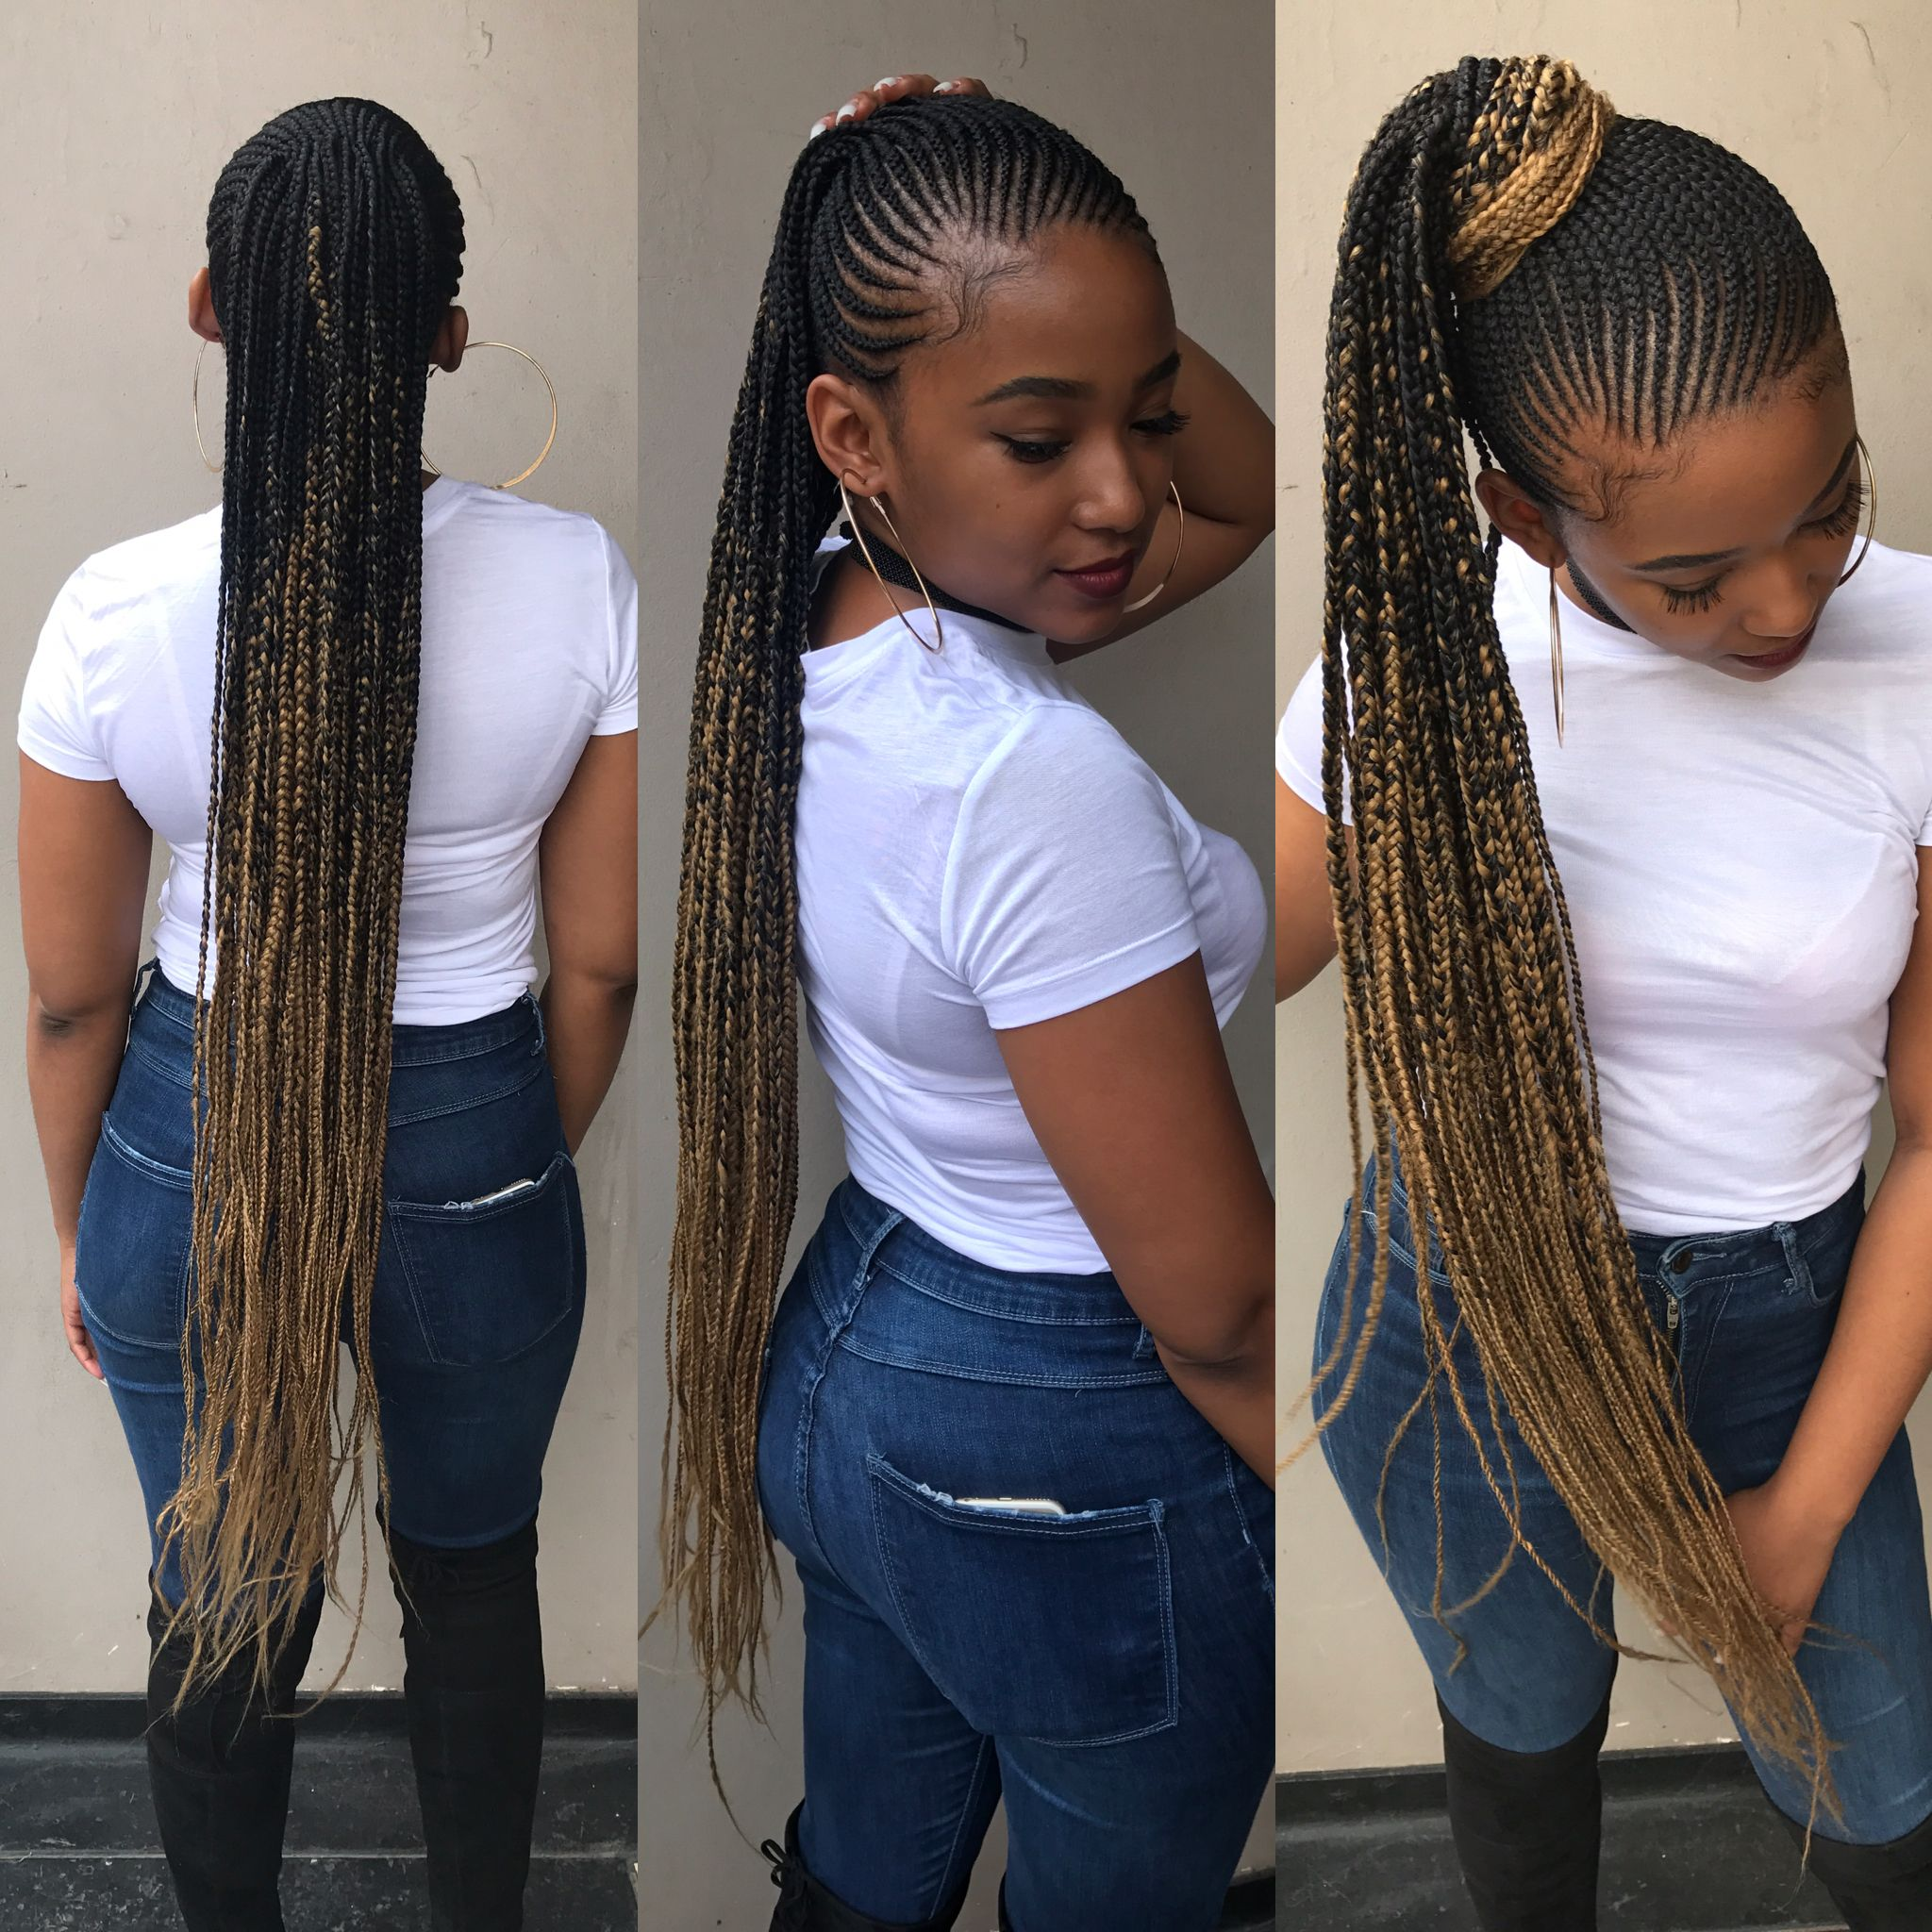 Fancyclaws Salon 15 Hurst Grove Musgrave Durban South Africa 0712093250 Cool Braid Hairstyles African Braids Hairstyles African Hairstyles